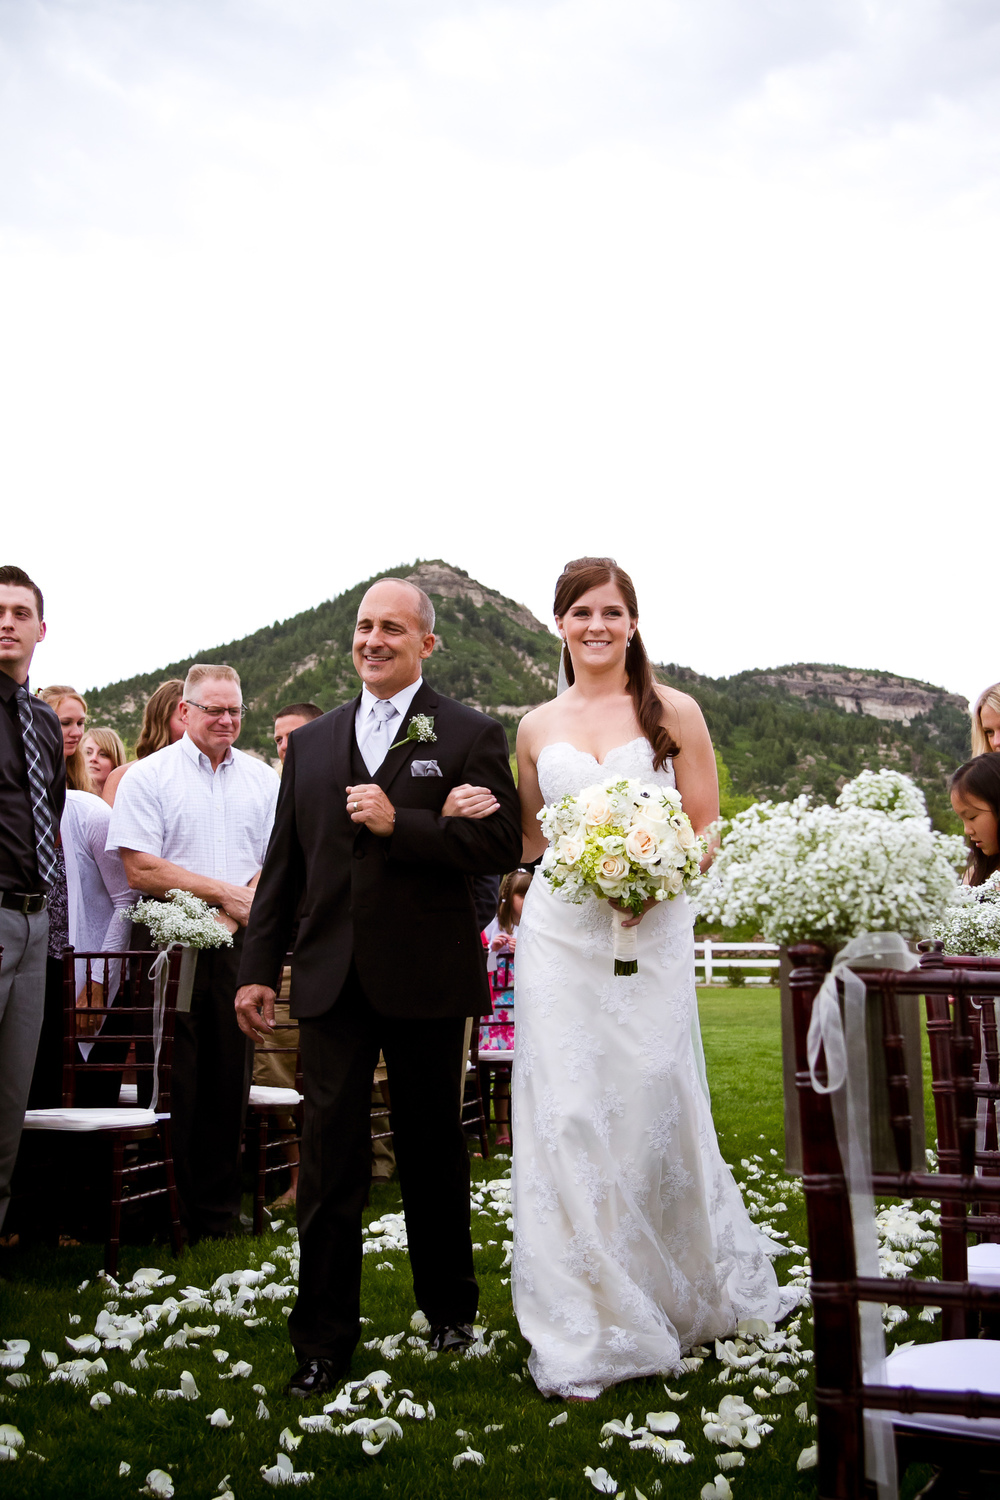 Crooked_Willow_Farms_Wedding_030.JPG